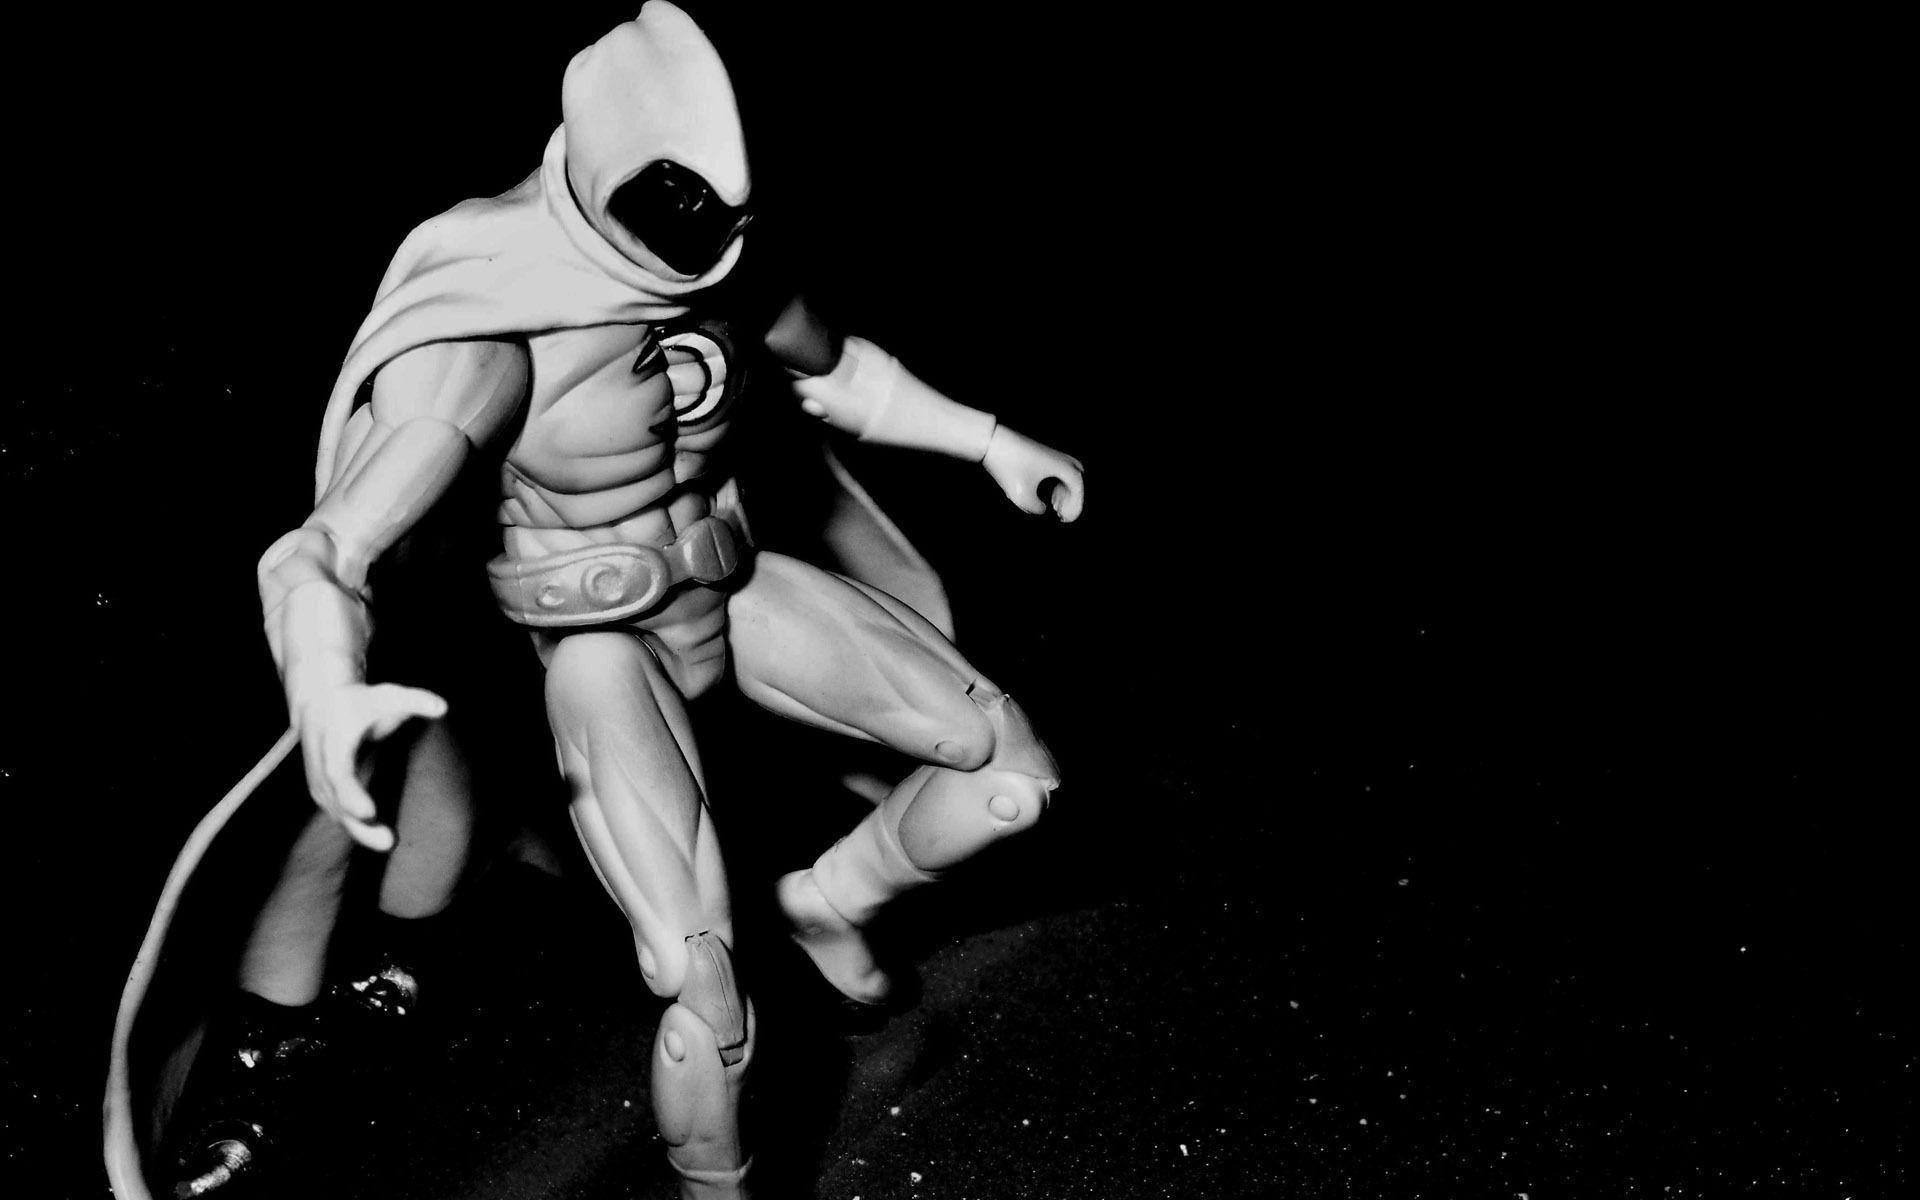 Wallpapers For > Moon Knight Wallpaper 1920x1080